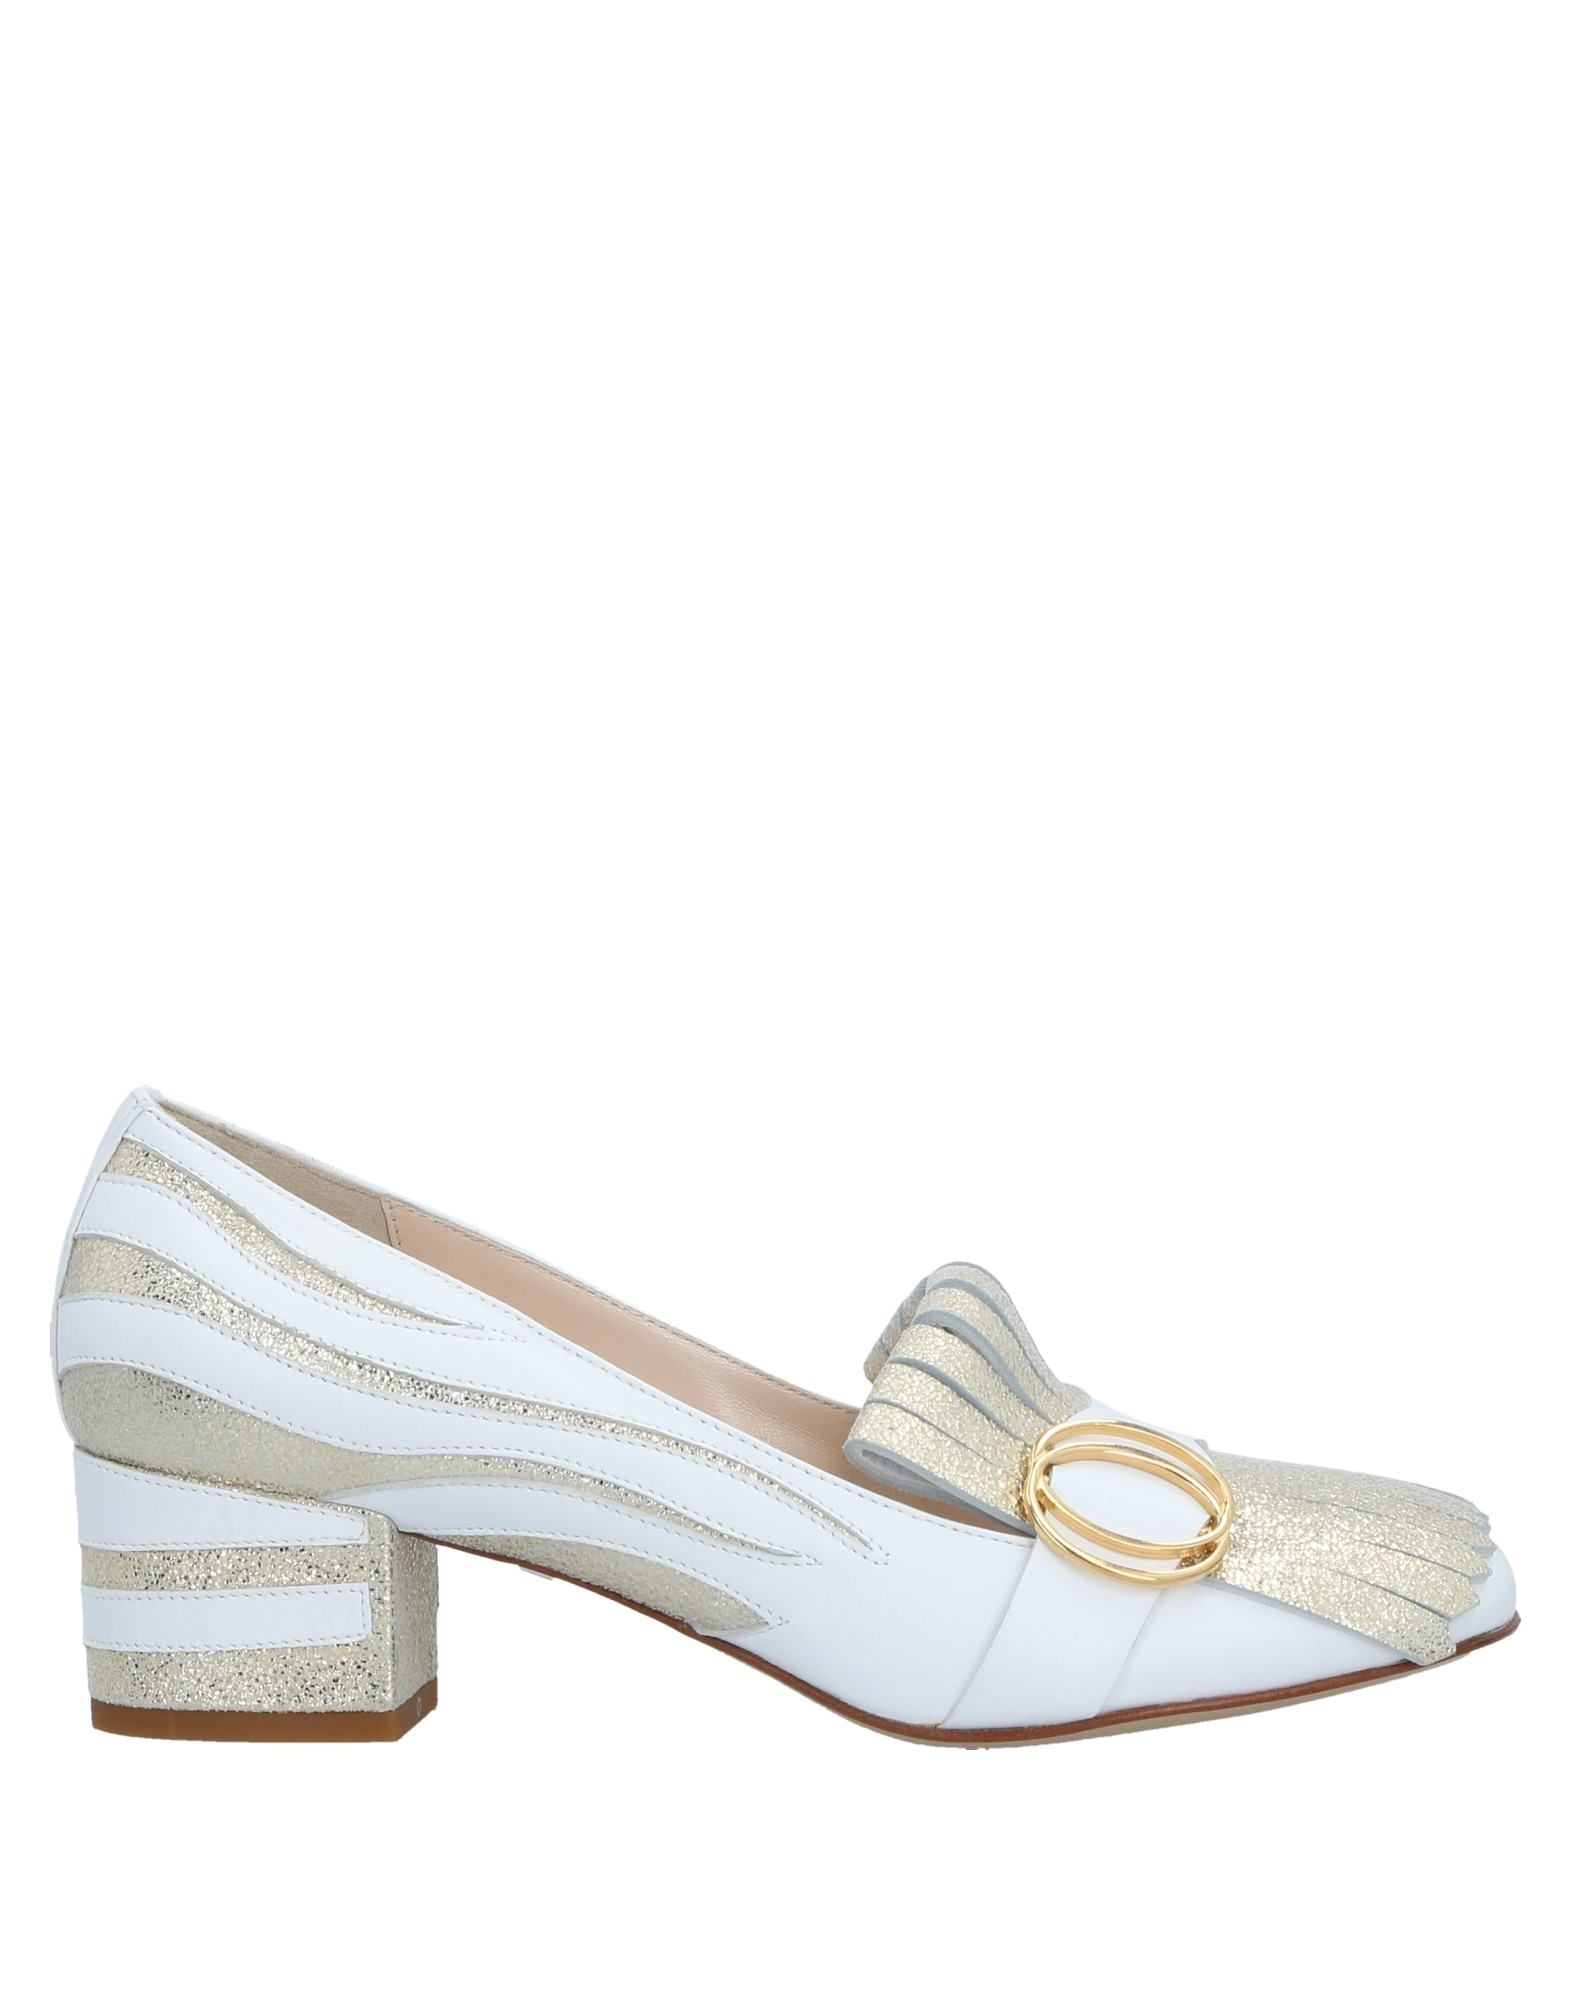 Franco Colli Loafers - Women Franco Colli Loafers online 11534936RD on  Australia - 11534936RD online a26414